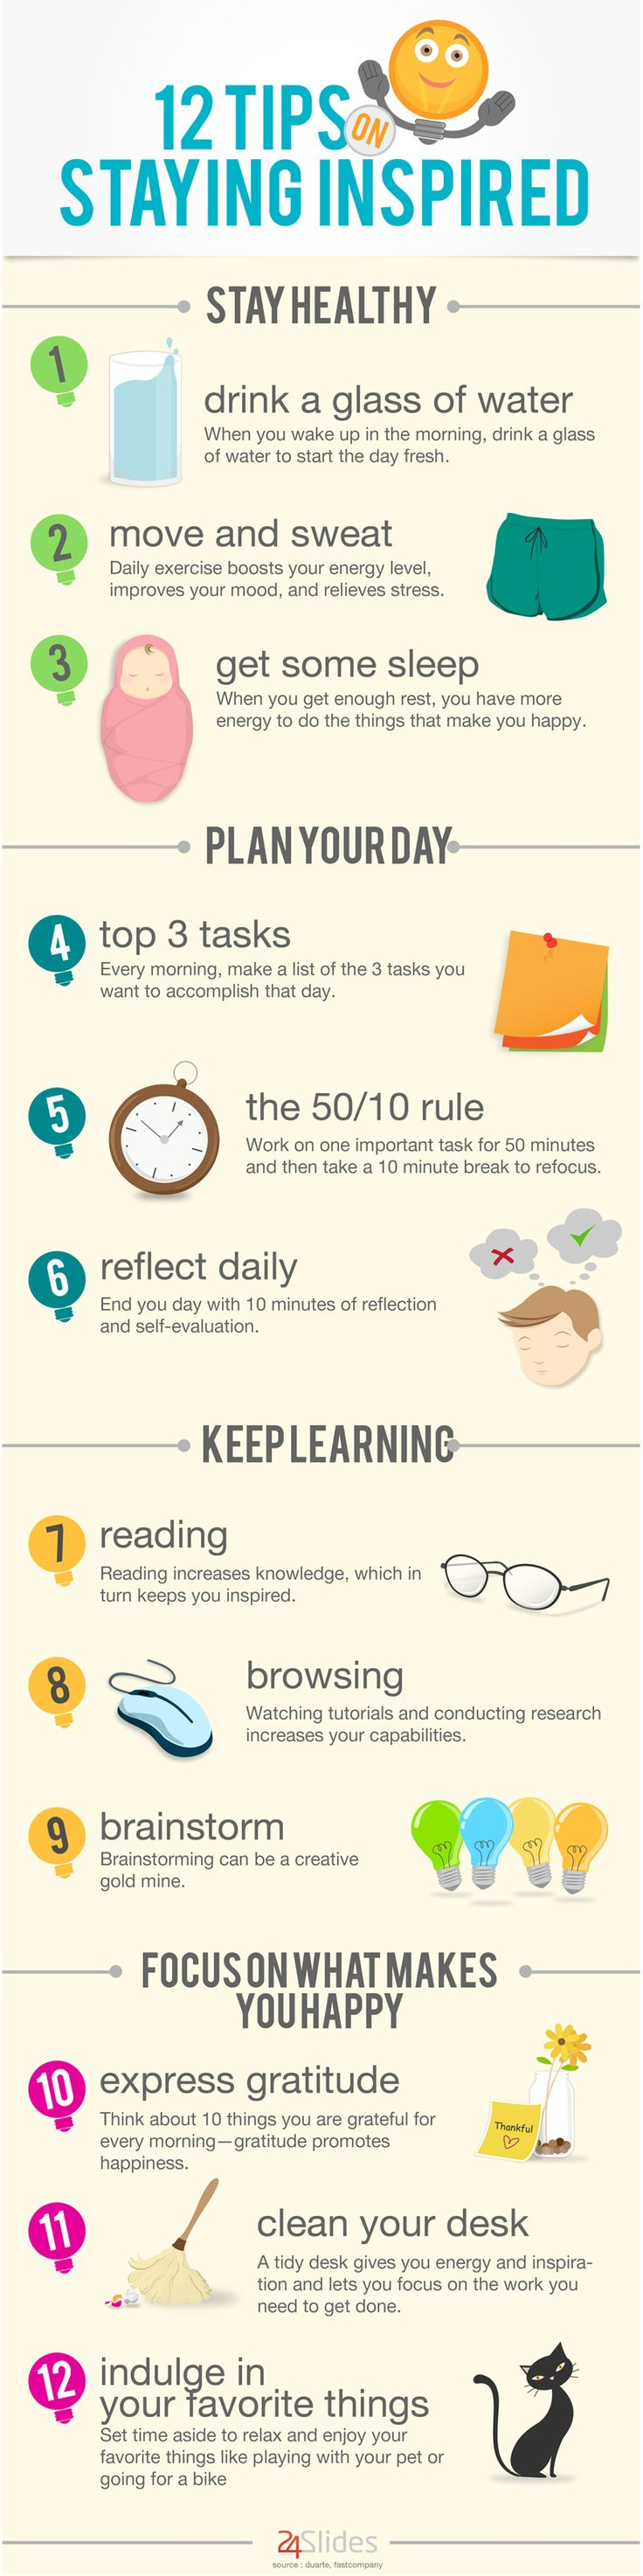 12 Tips On Staying Inspired   #Infographic #Health #Inspired